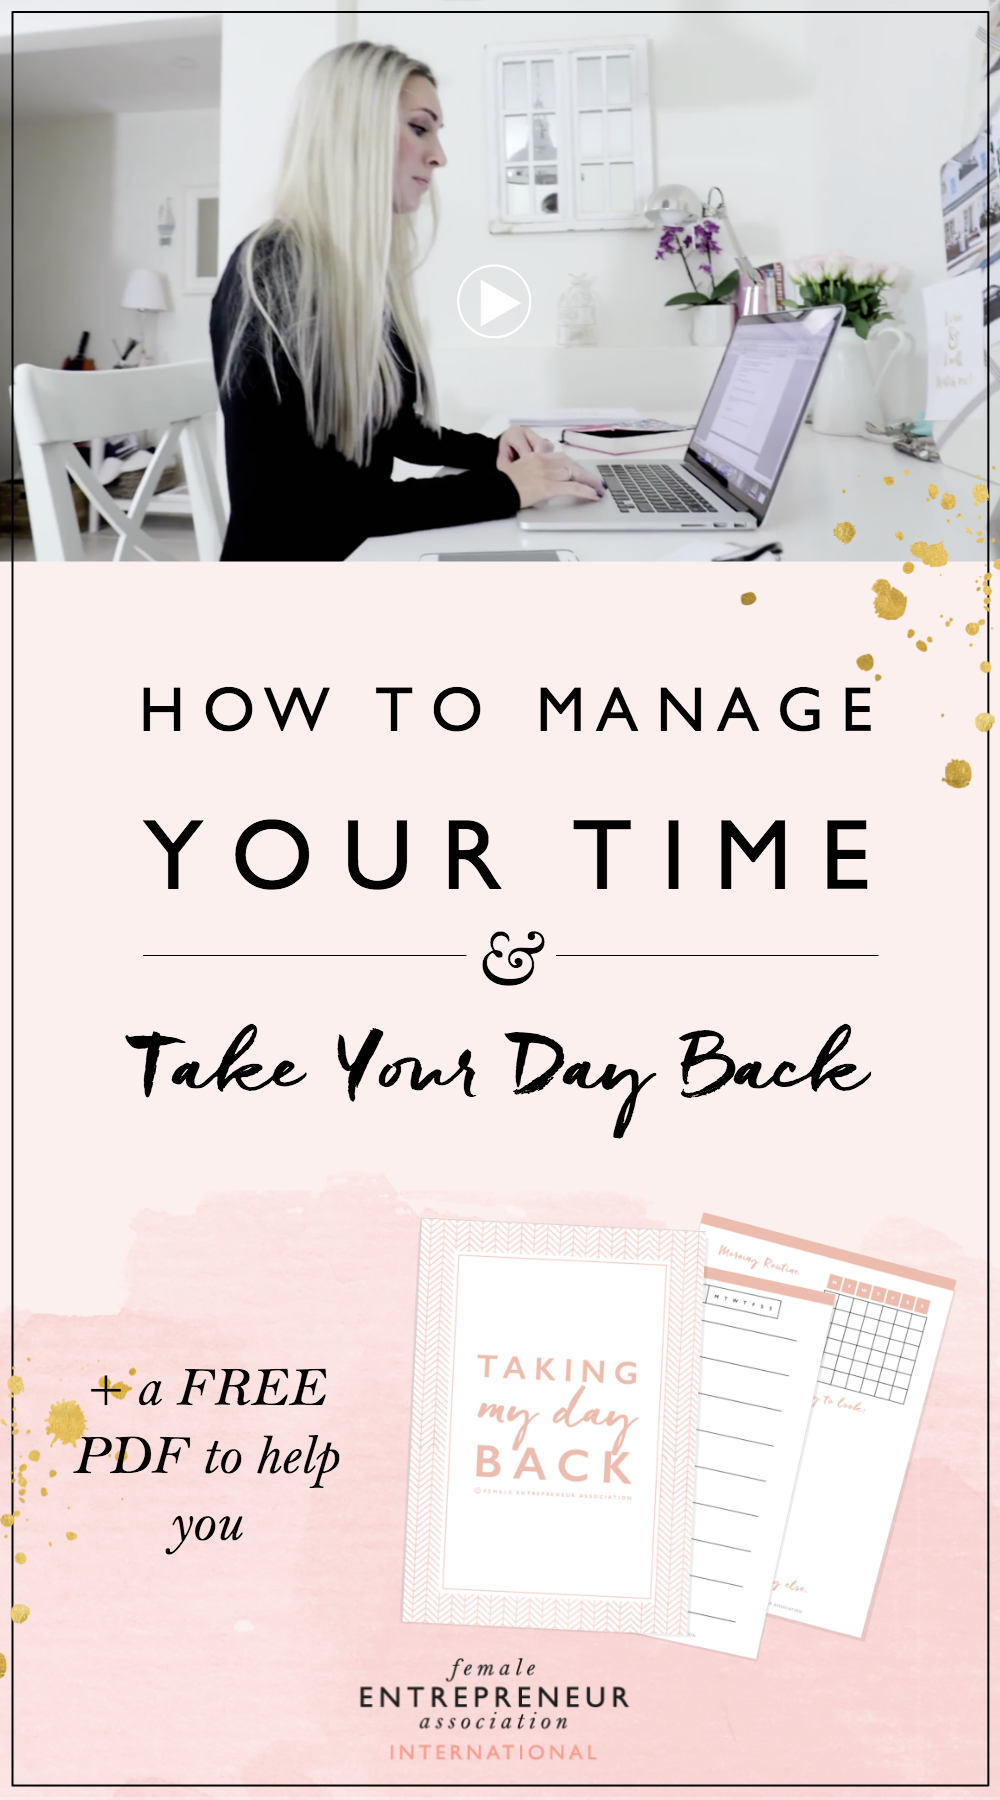 As entrepreneurs, we have so much going on. We can be spinning so many plates and it can often leave us feeling like overwhelmed, crazy, headless chickens! At least that's how I often feel. :) Here's what I do to get back to being organized and in control of my time.